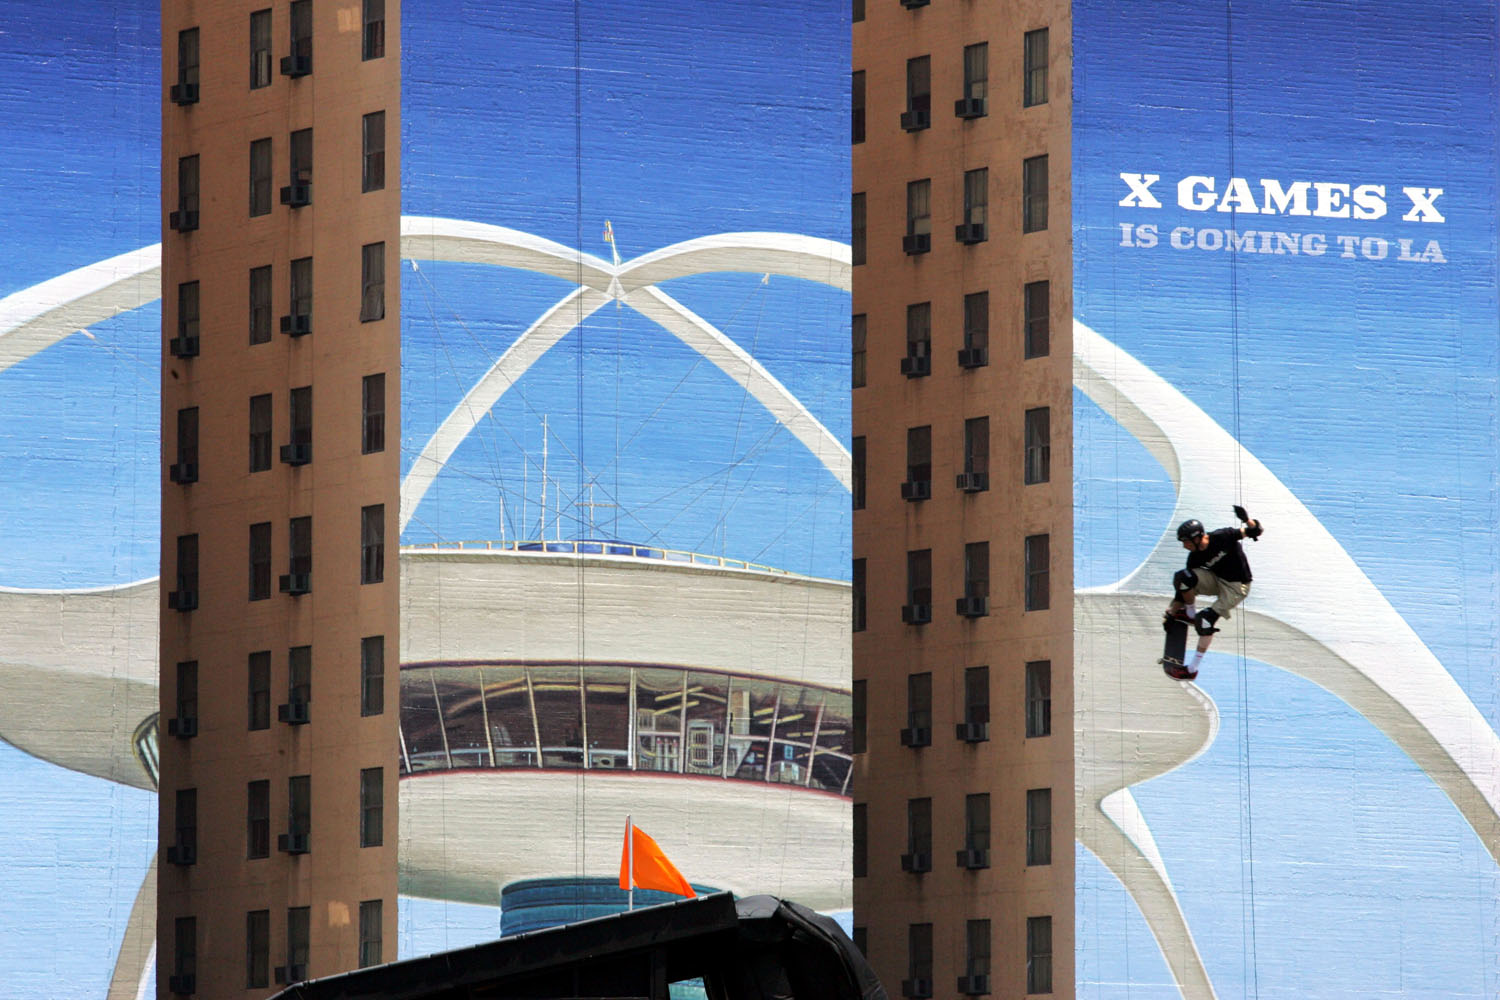 Tony Hawk attempts to land his jump in the Skateboard Big Air competition during the X Games 11 on August 5, 2004 at the Staples Center in Los Angeles, California.